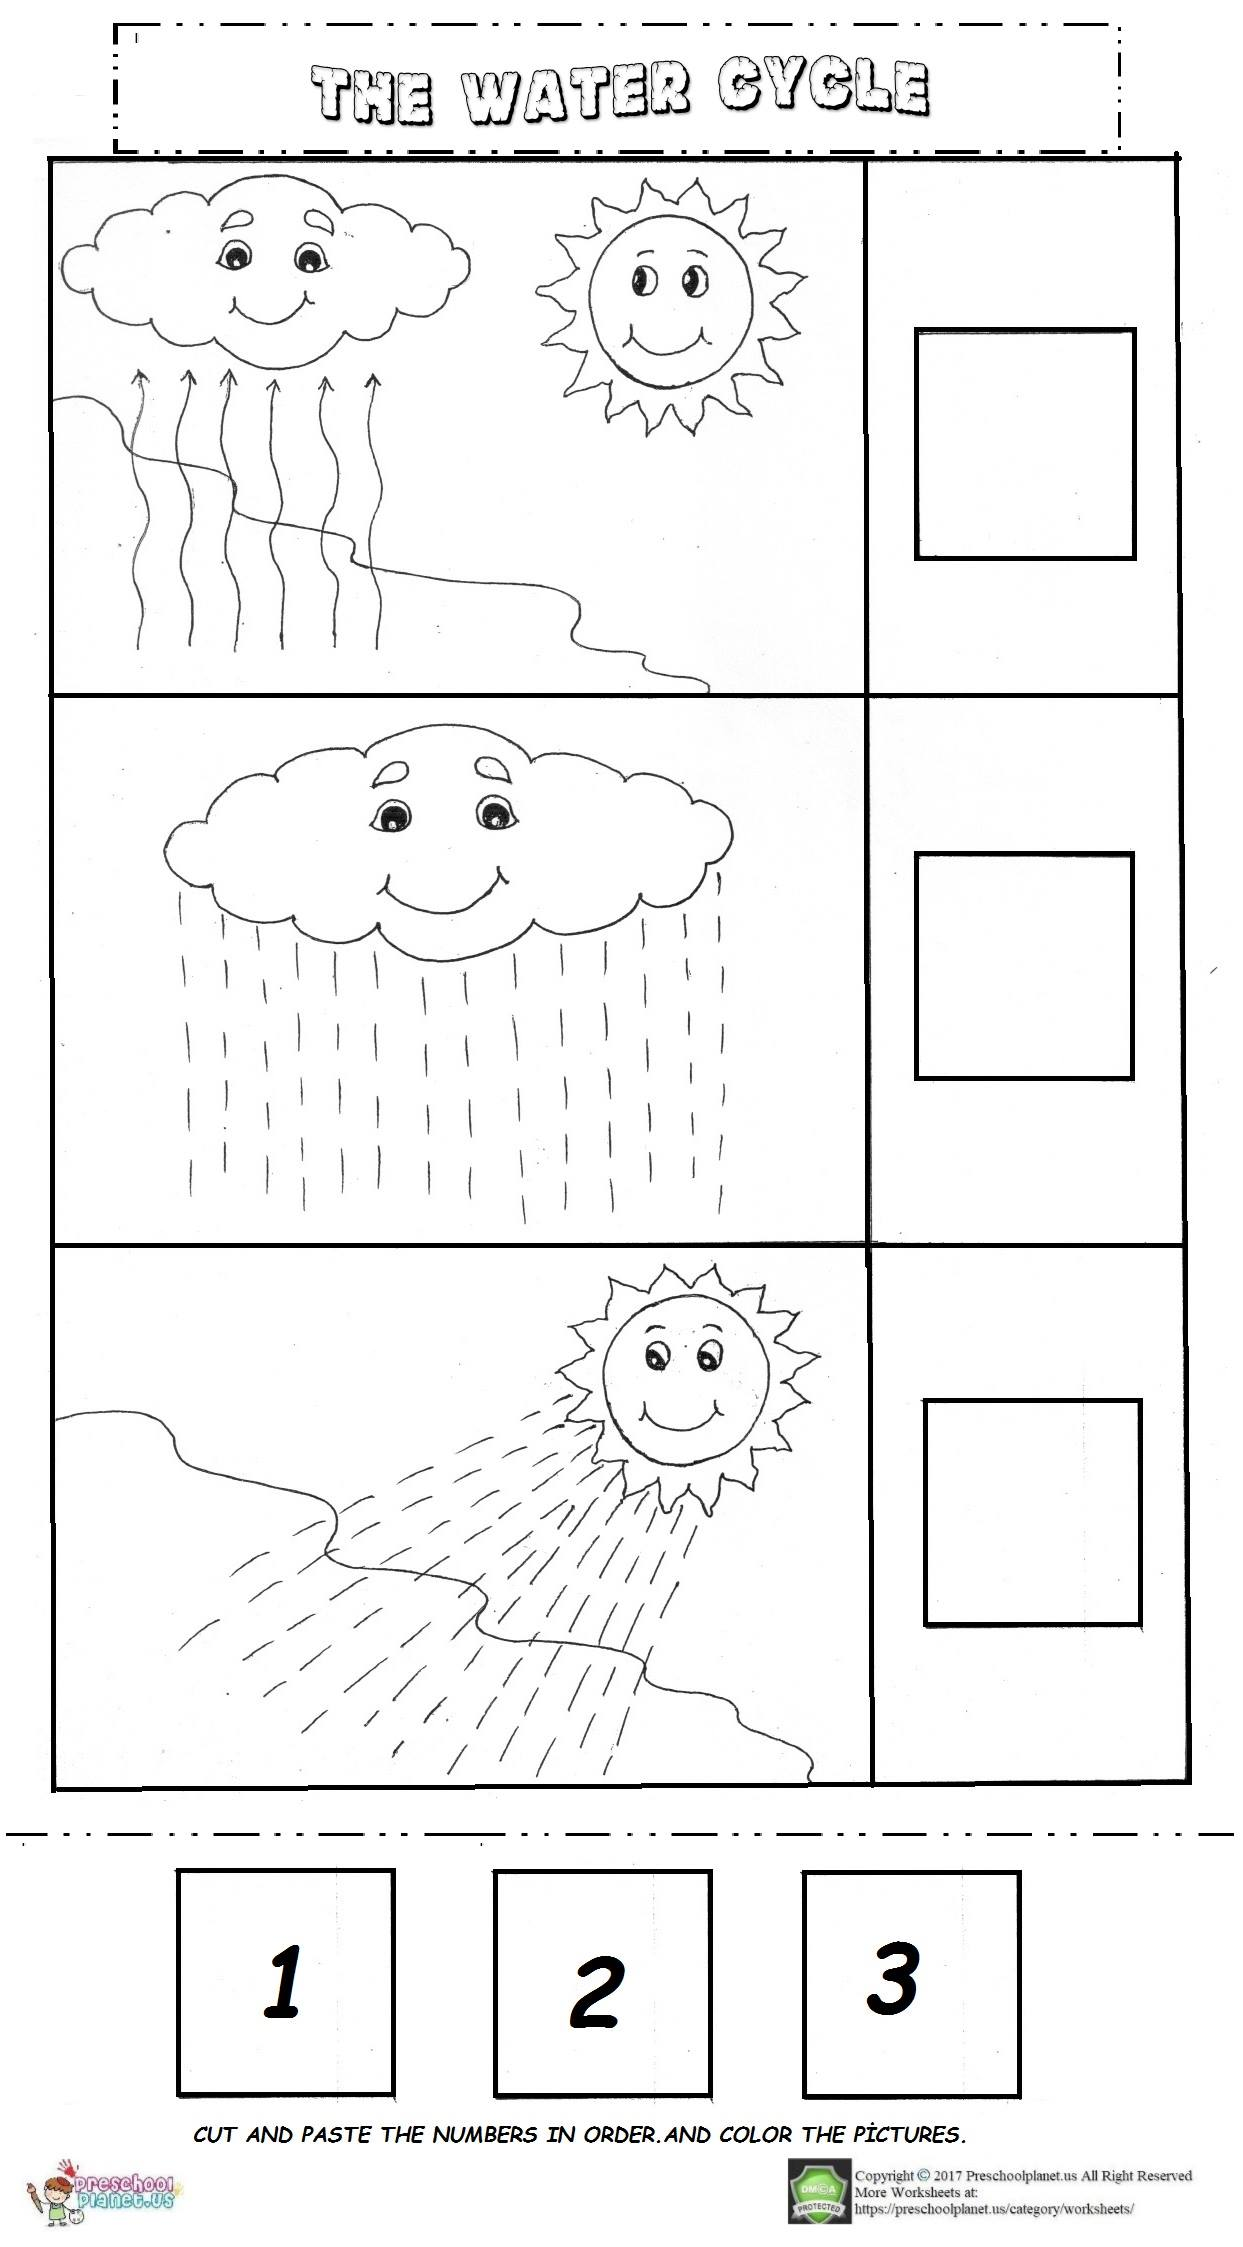 Rain Cycle Preschool Worksheet